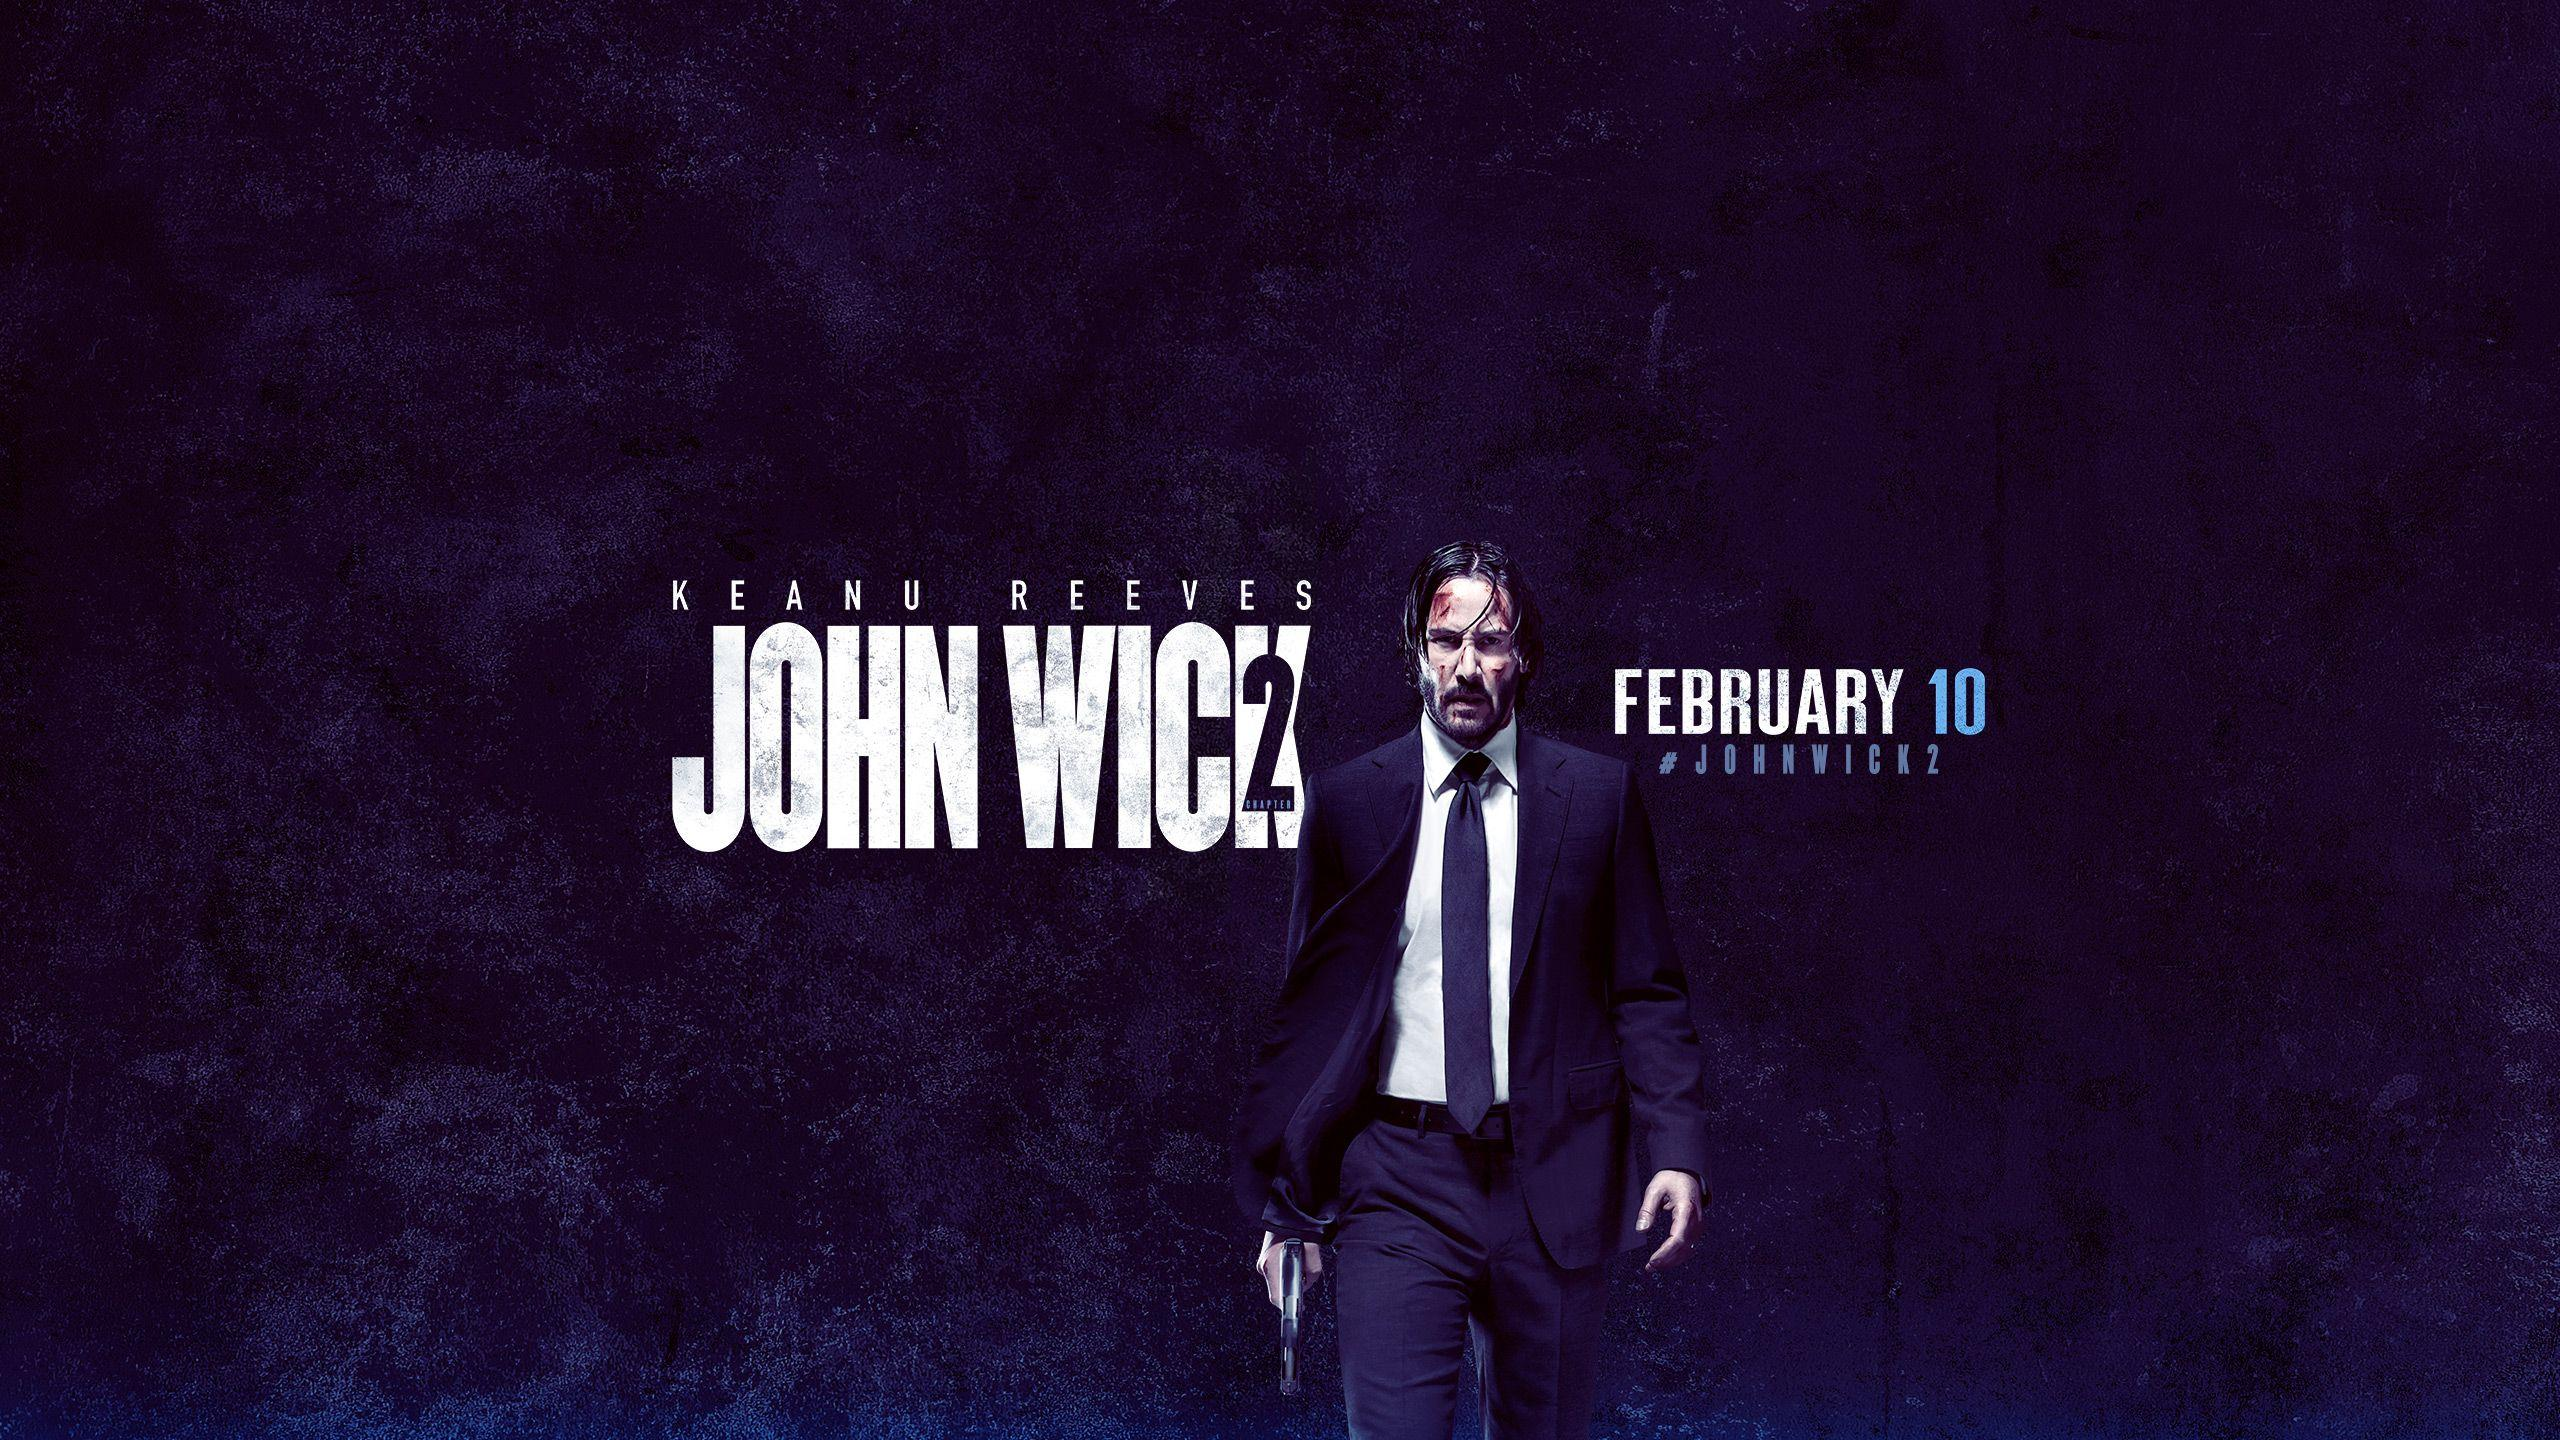 John Wick Quotes Wallpapers Wallpaper Cave